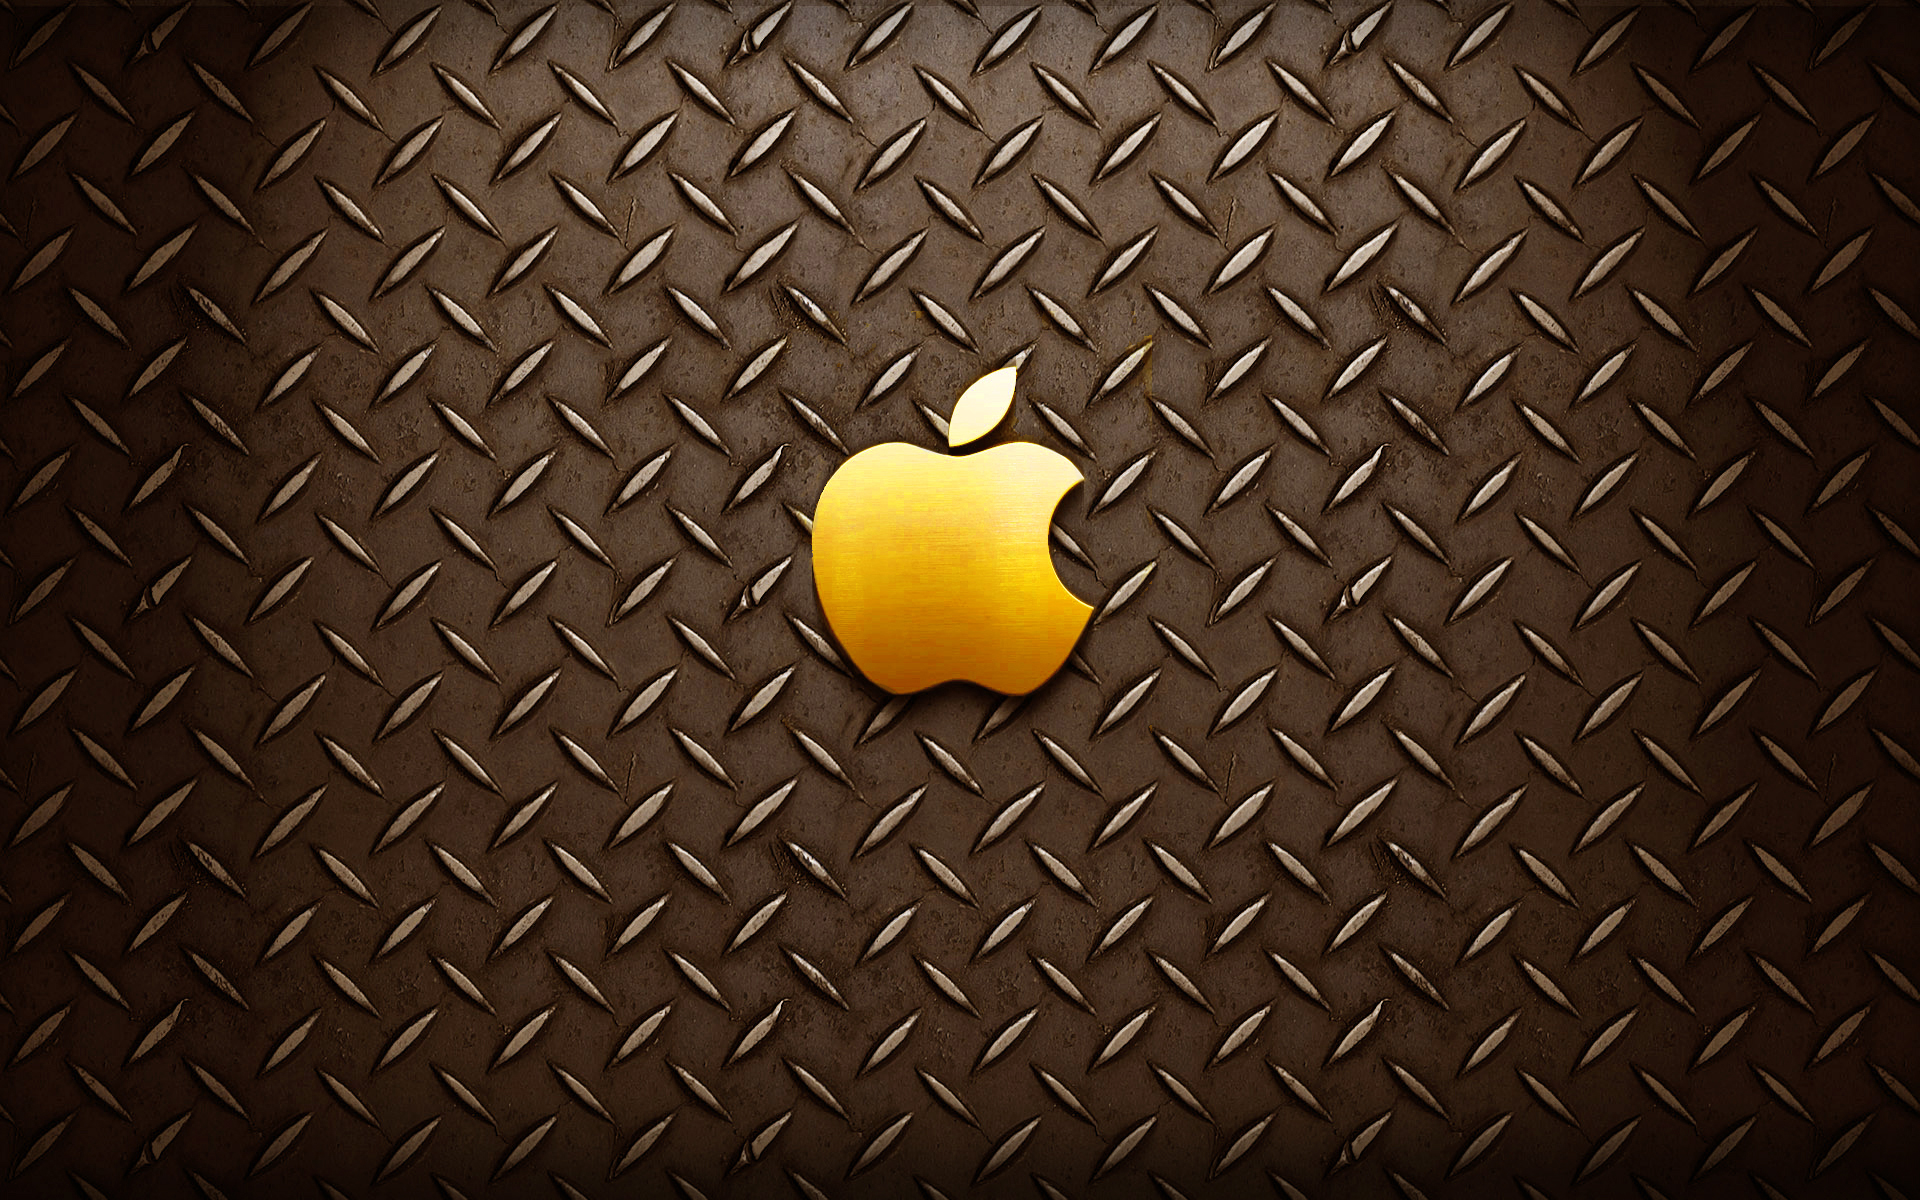 gold apple logo wallpaper | 1920x1200 | #27722